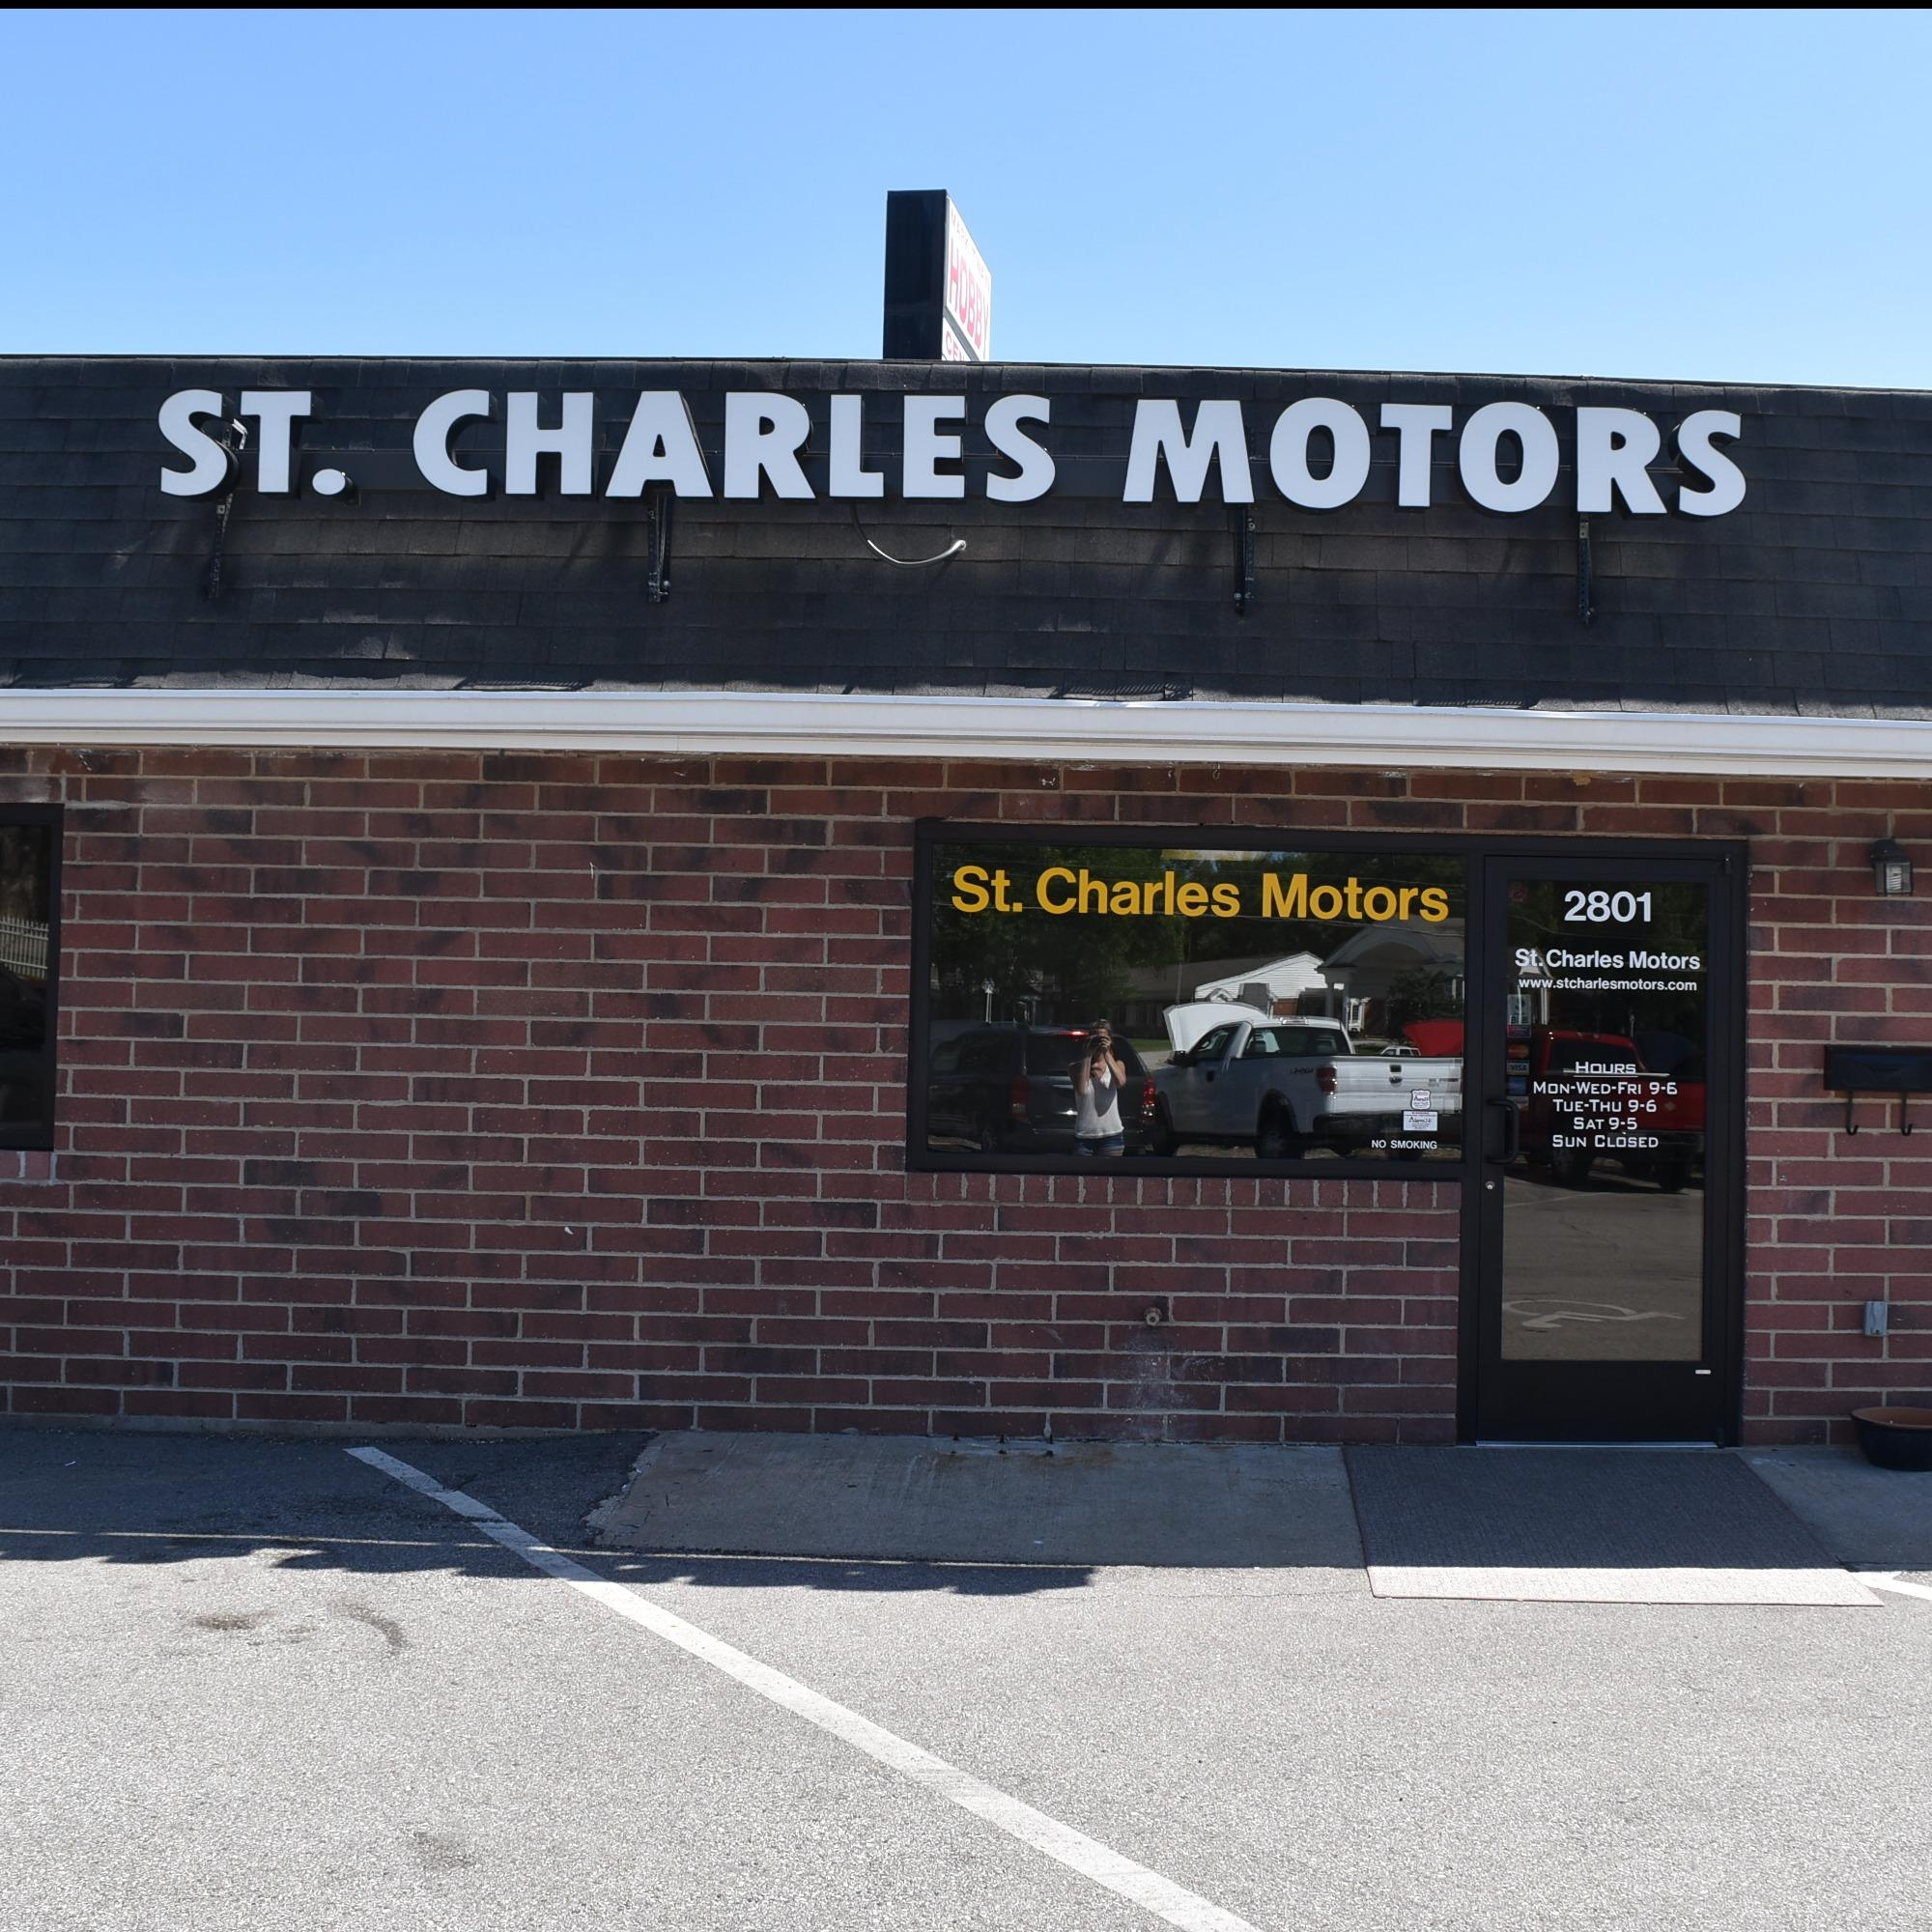 st charles motors 8 photos auto dealers st charles mo reviews. Black Bedroom Furniture Sets. Home Design Ideas